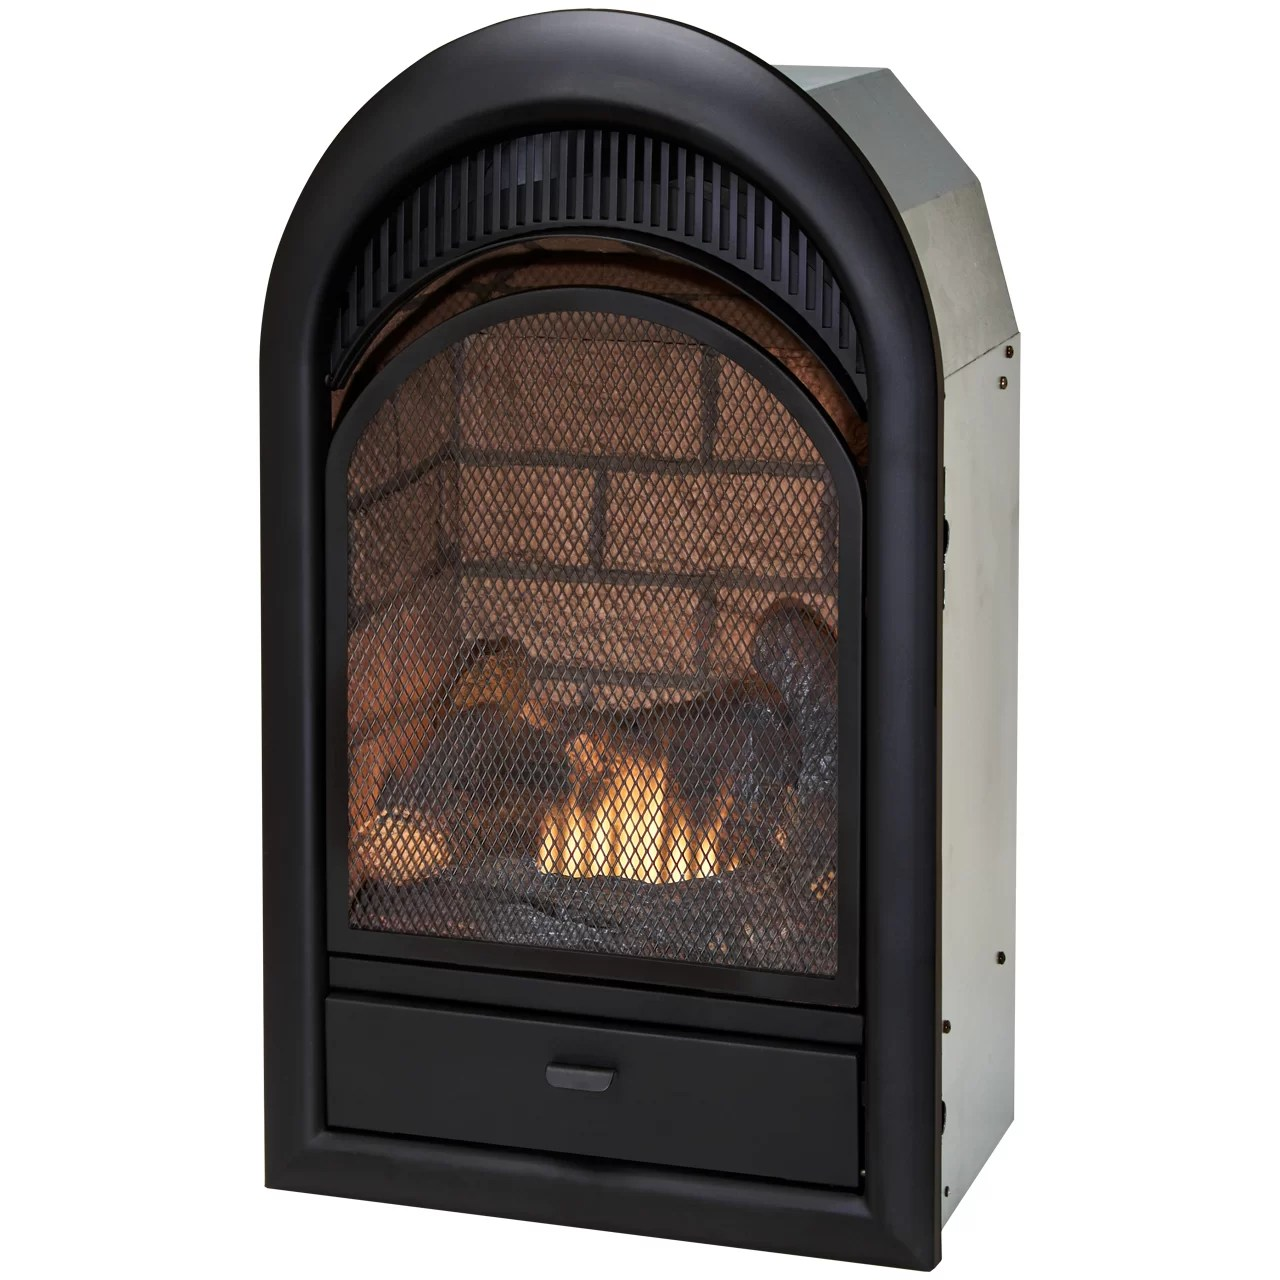 Free Fireplace Insert Vent Free Natural Gas Propane Fireplace Insert